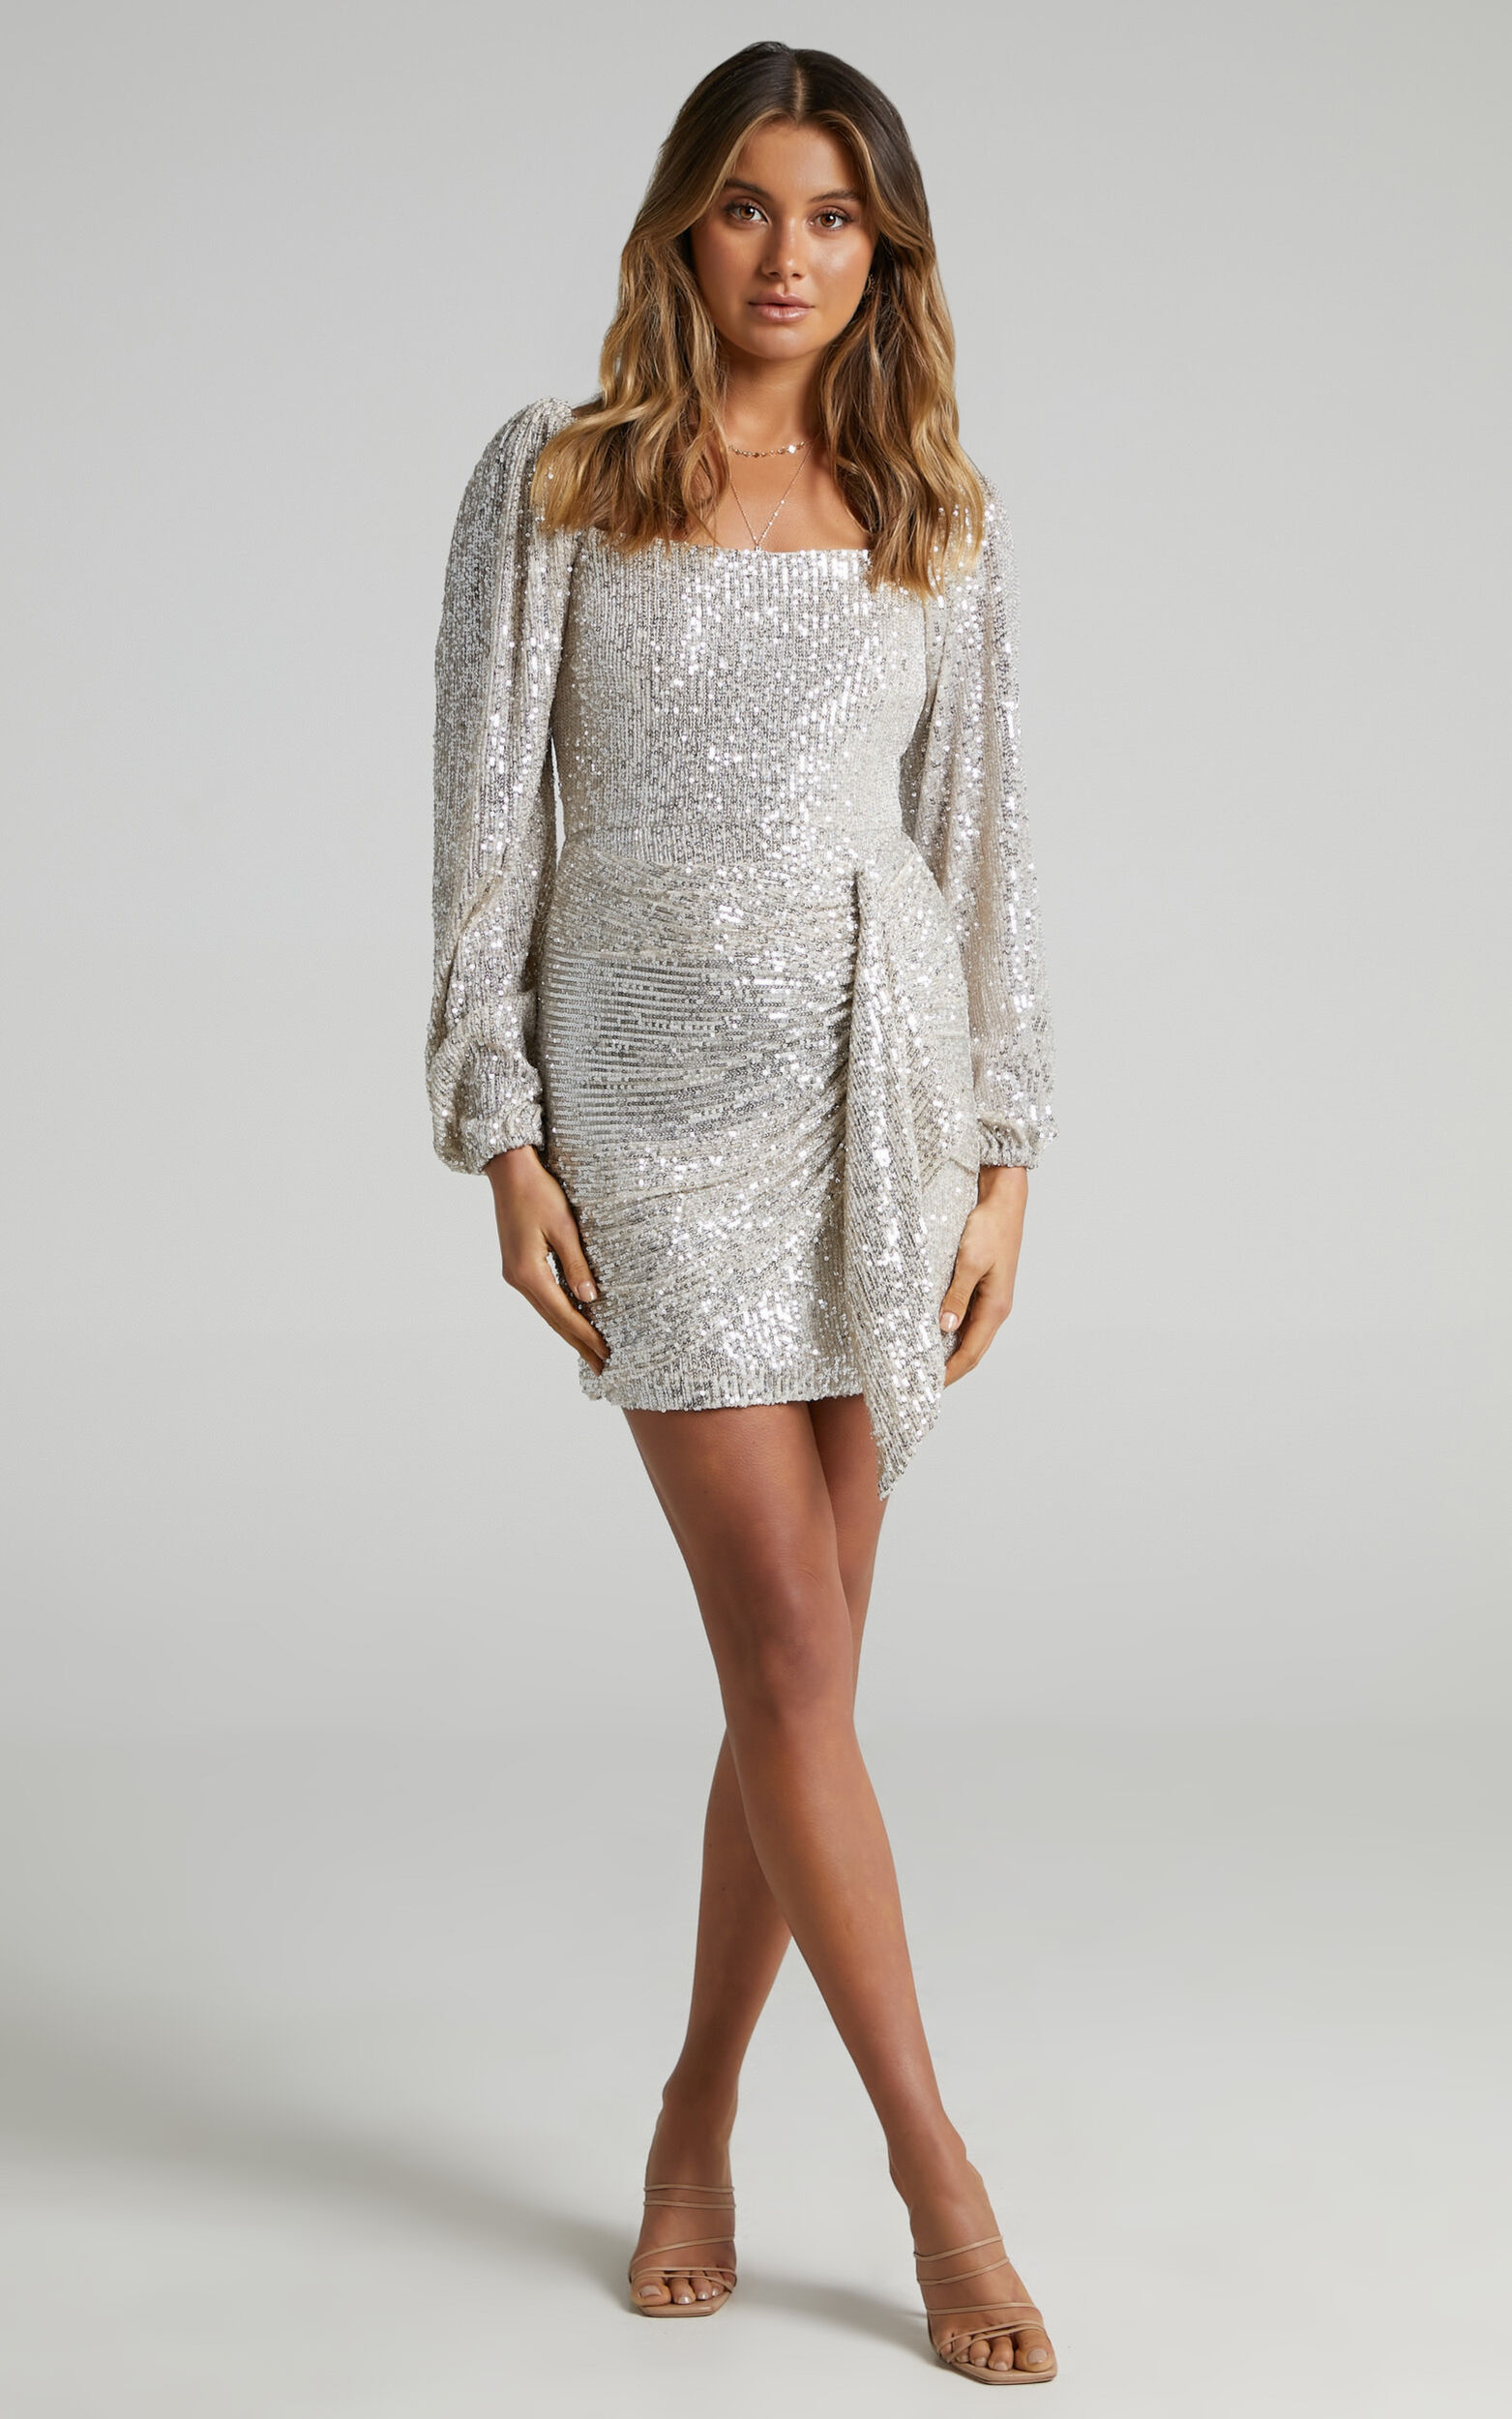 Harmony Longsleeve Drape Mini Dress in Champagne Sequin - 06, GLD1, super-hi-res image number null